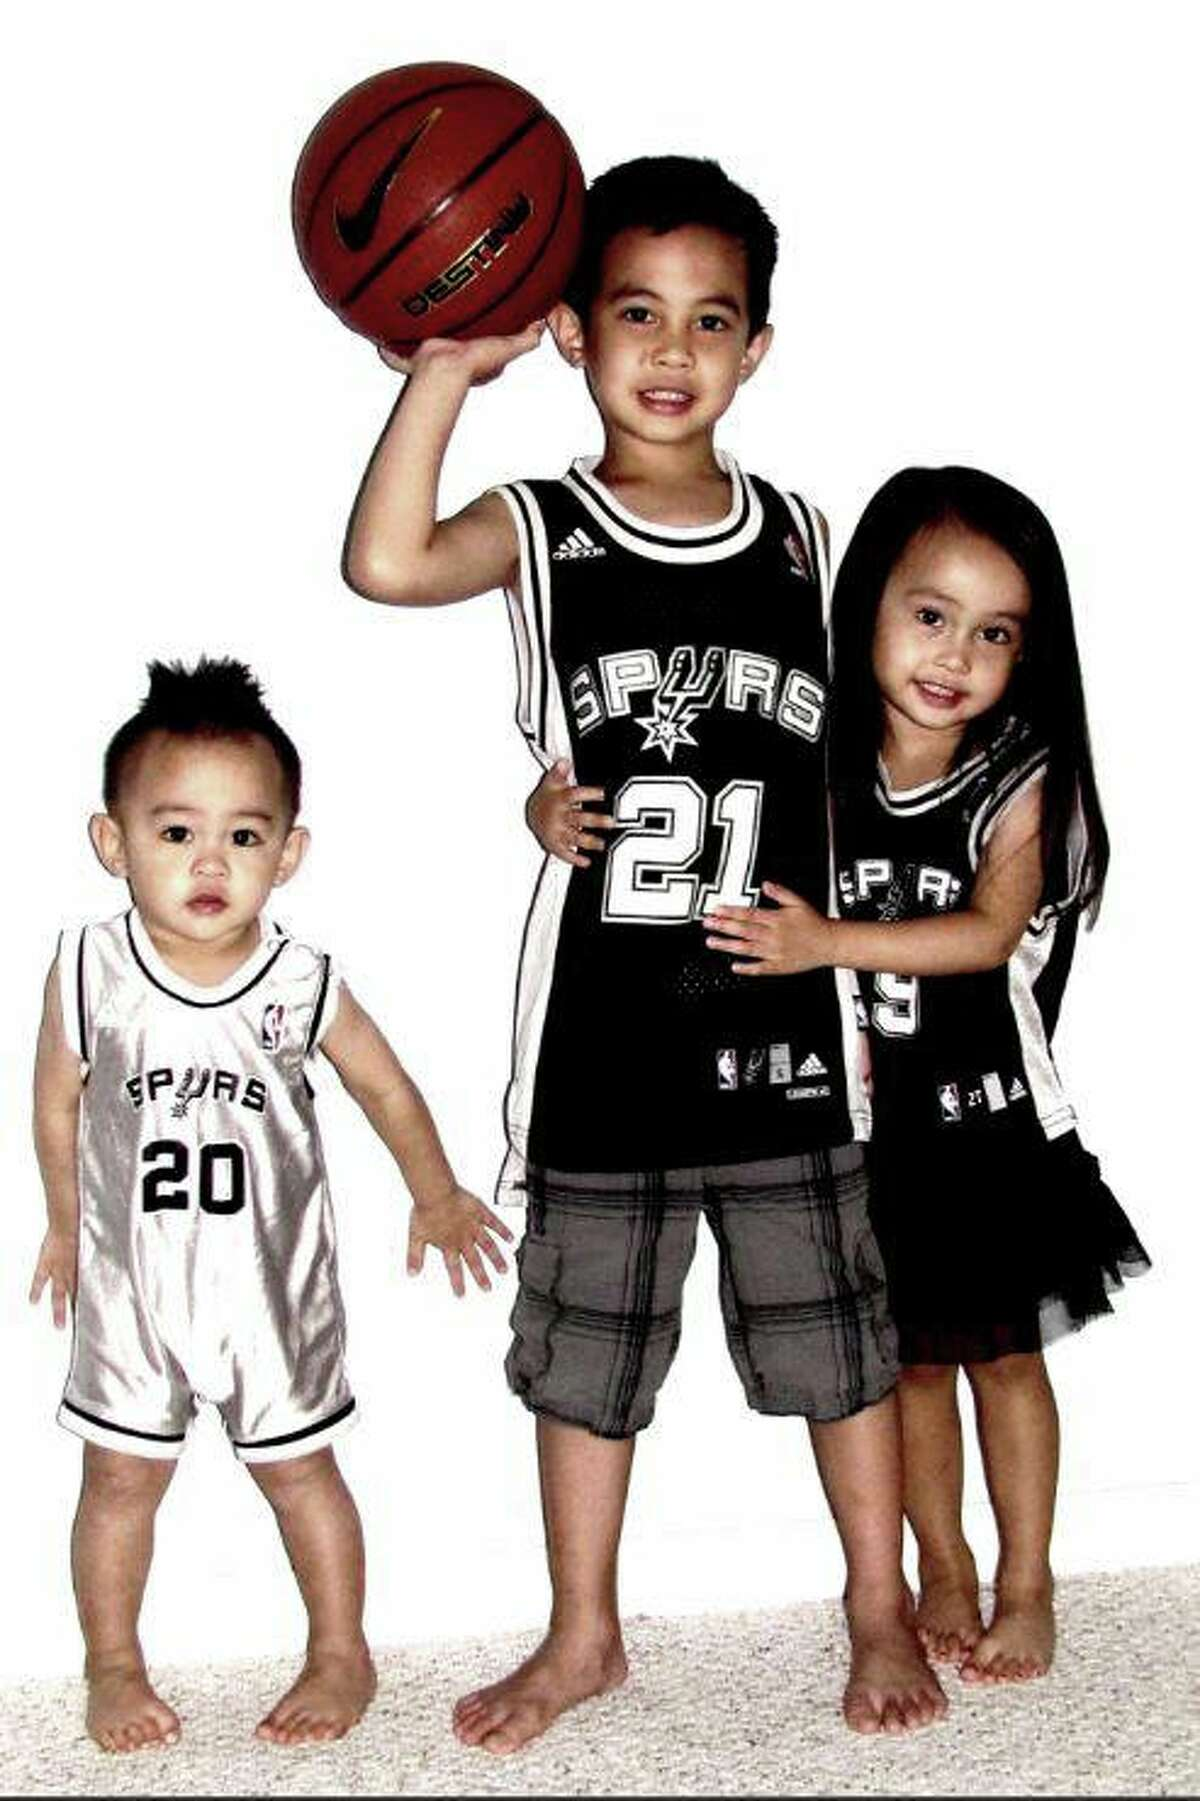 There's no question that Spurs fans are the best in the NBA. Click ahead for more fan photos from readers. Share your Spurs fan photos here.